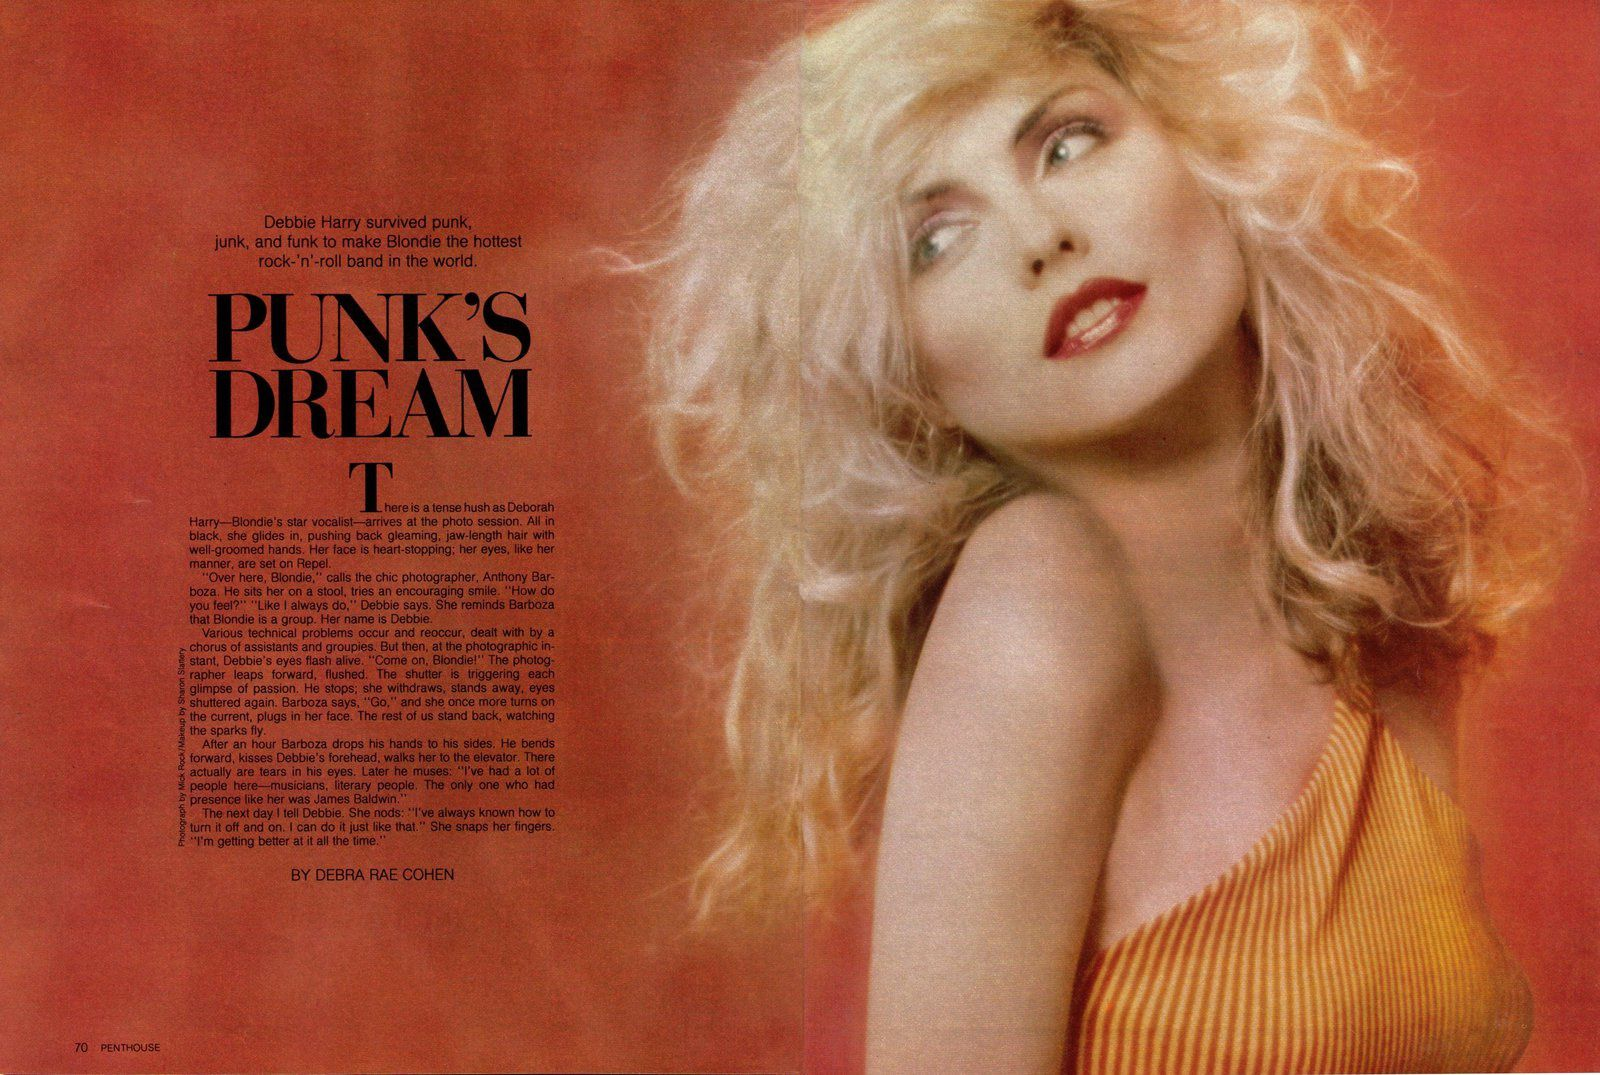 Debbie Harry, the singer of Blondie, 1980 - US Penthouse February